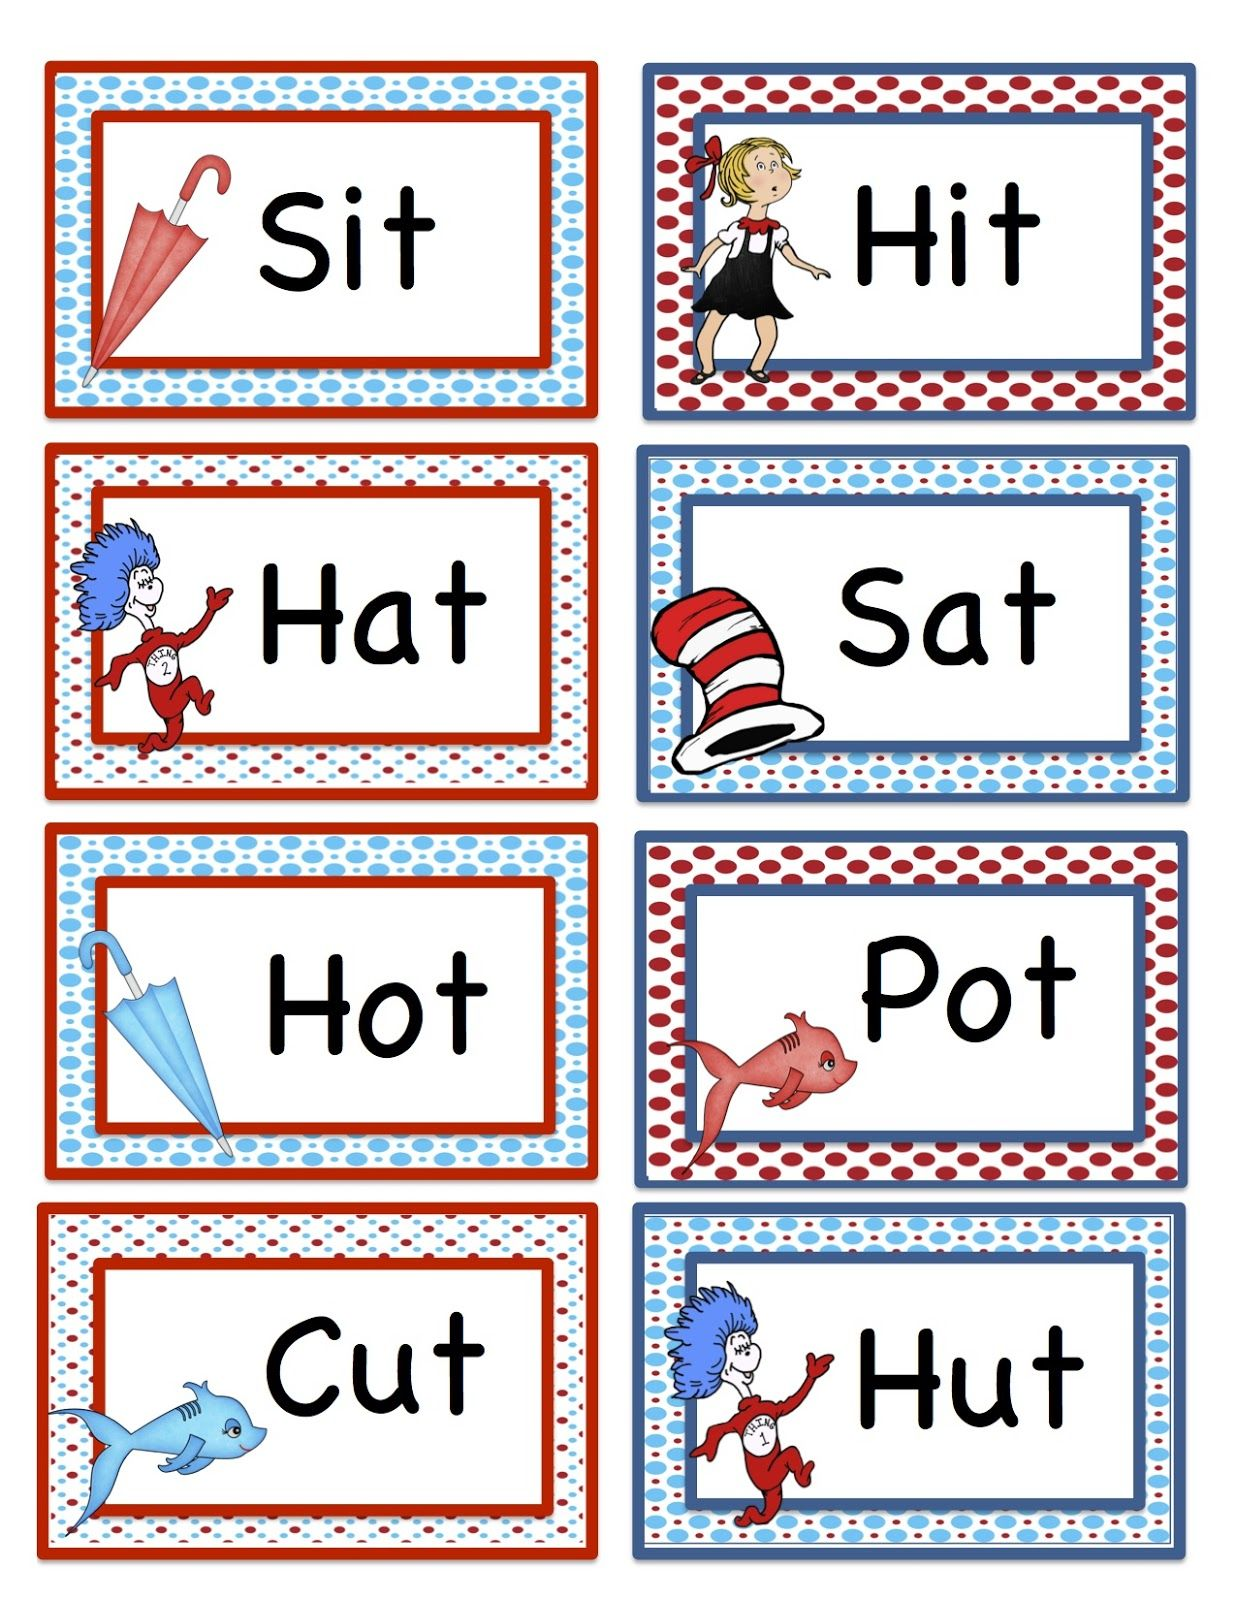 Worksheet Rhythming Words 17 best images about rhyming words on pinterest poem dr seuss and free nursery rhymes